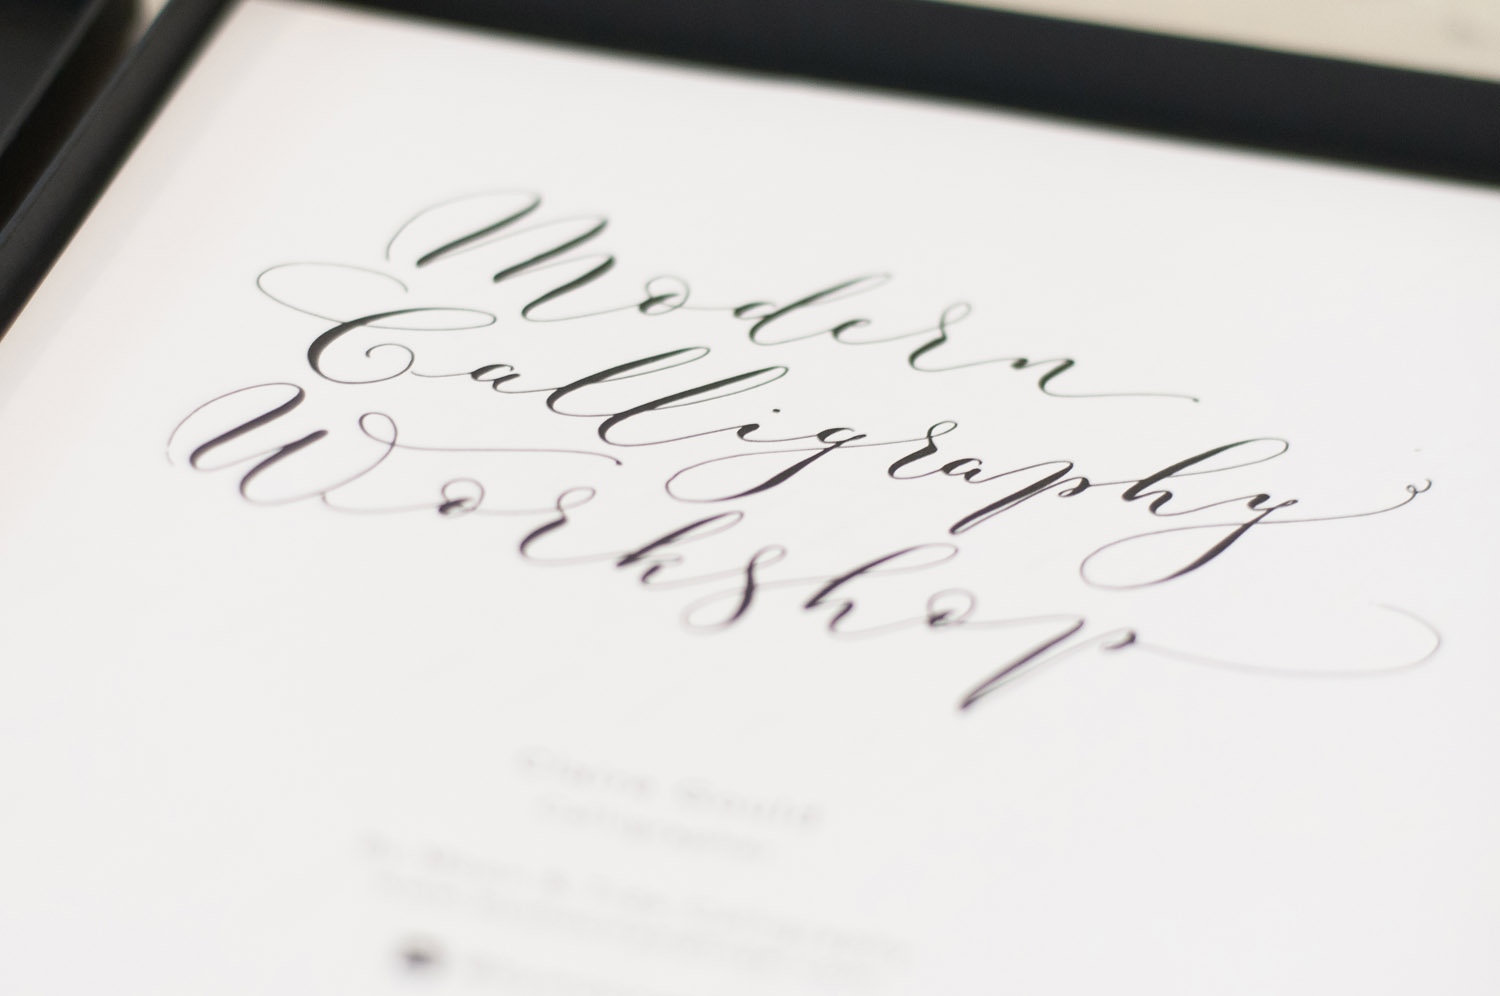 Calligraphy For Beginners Online Learn Calligraphy Page 2 Calligraphy For Weddings